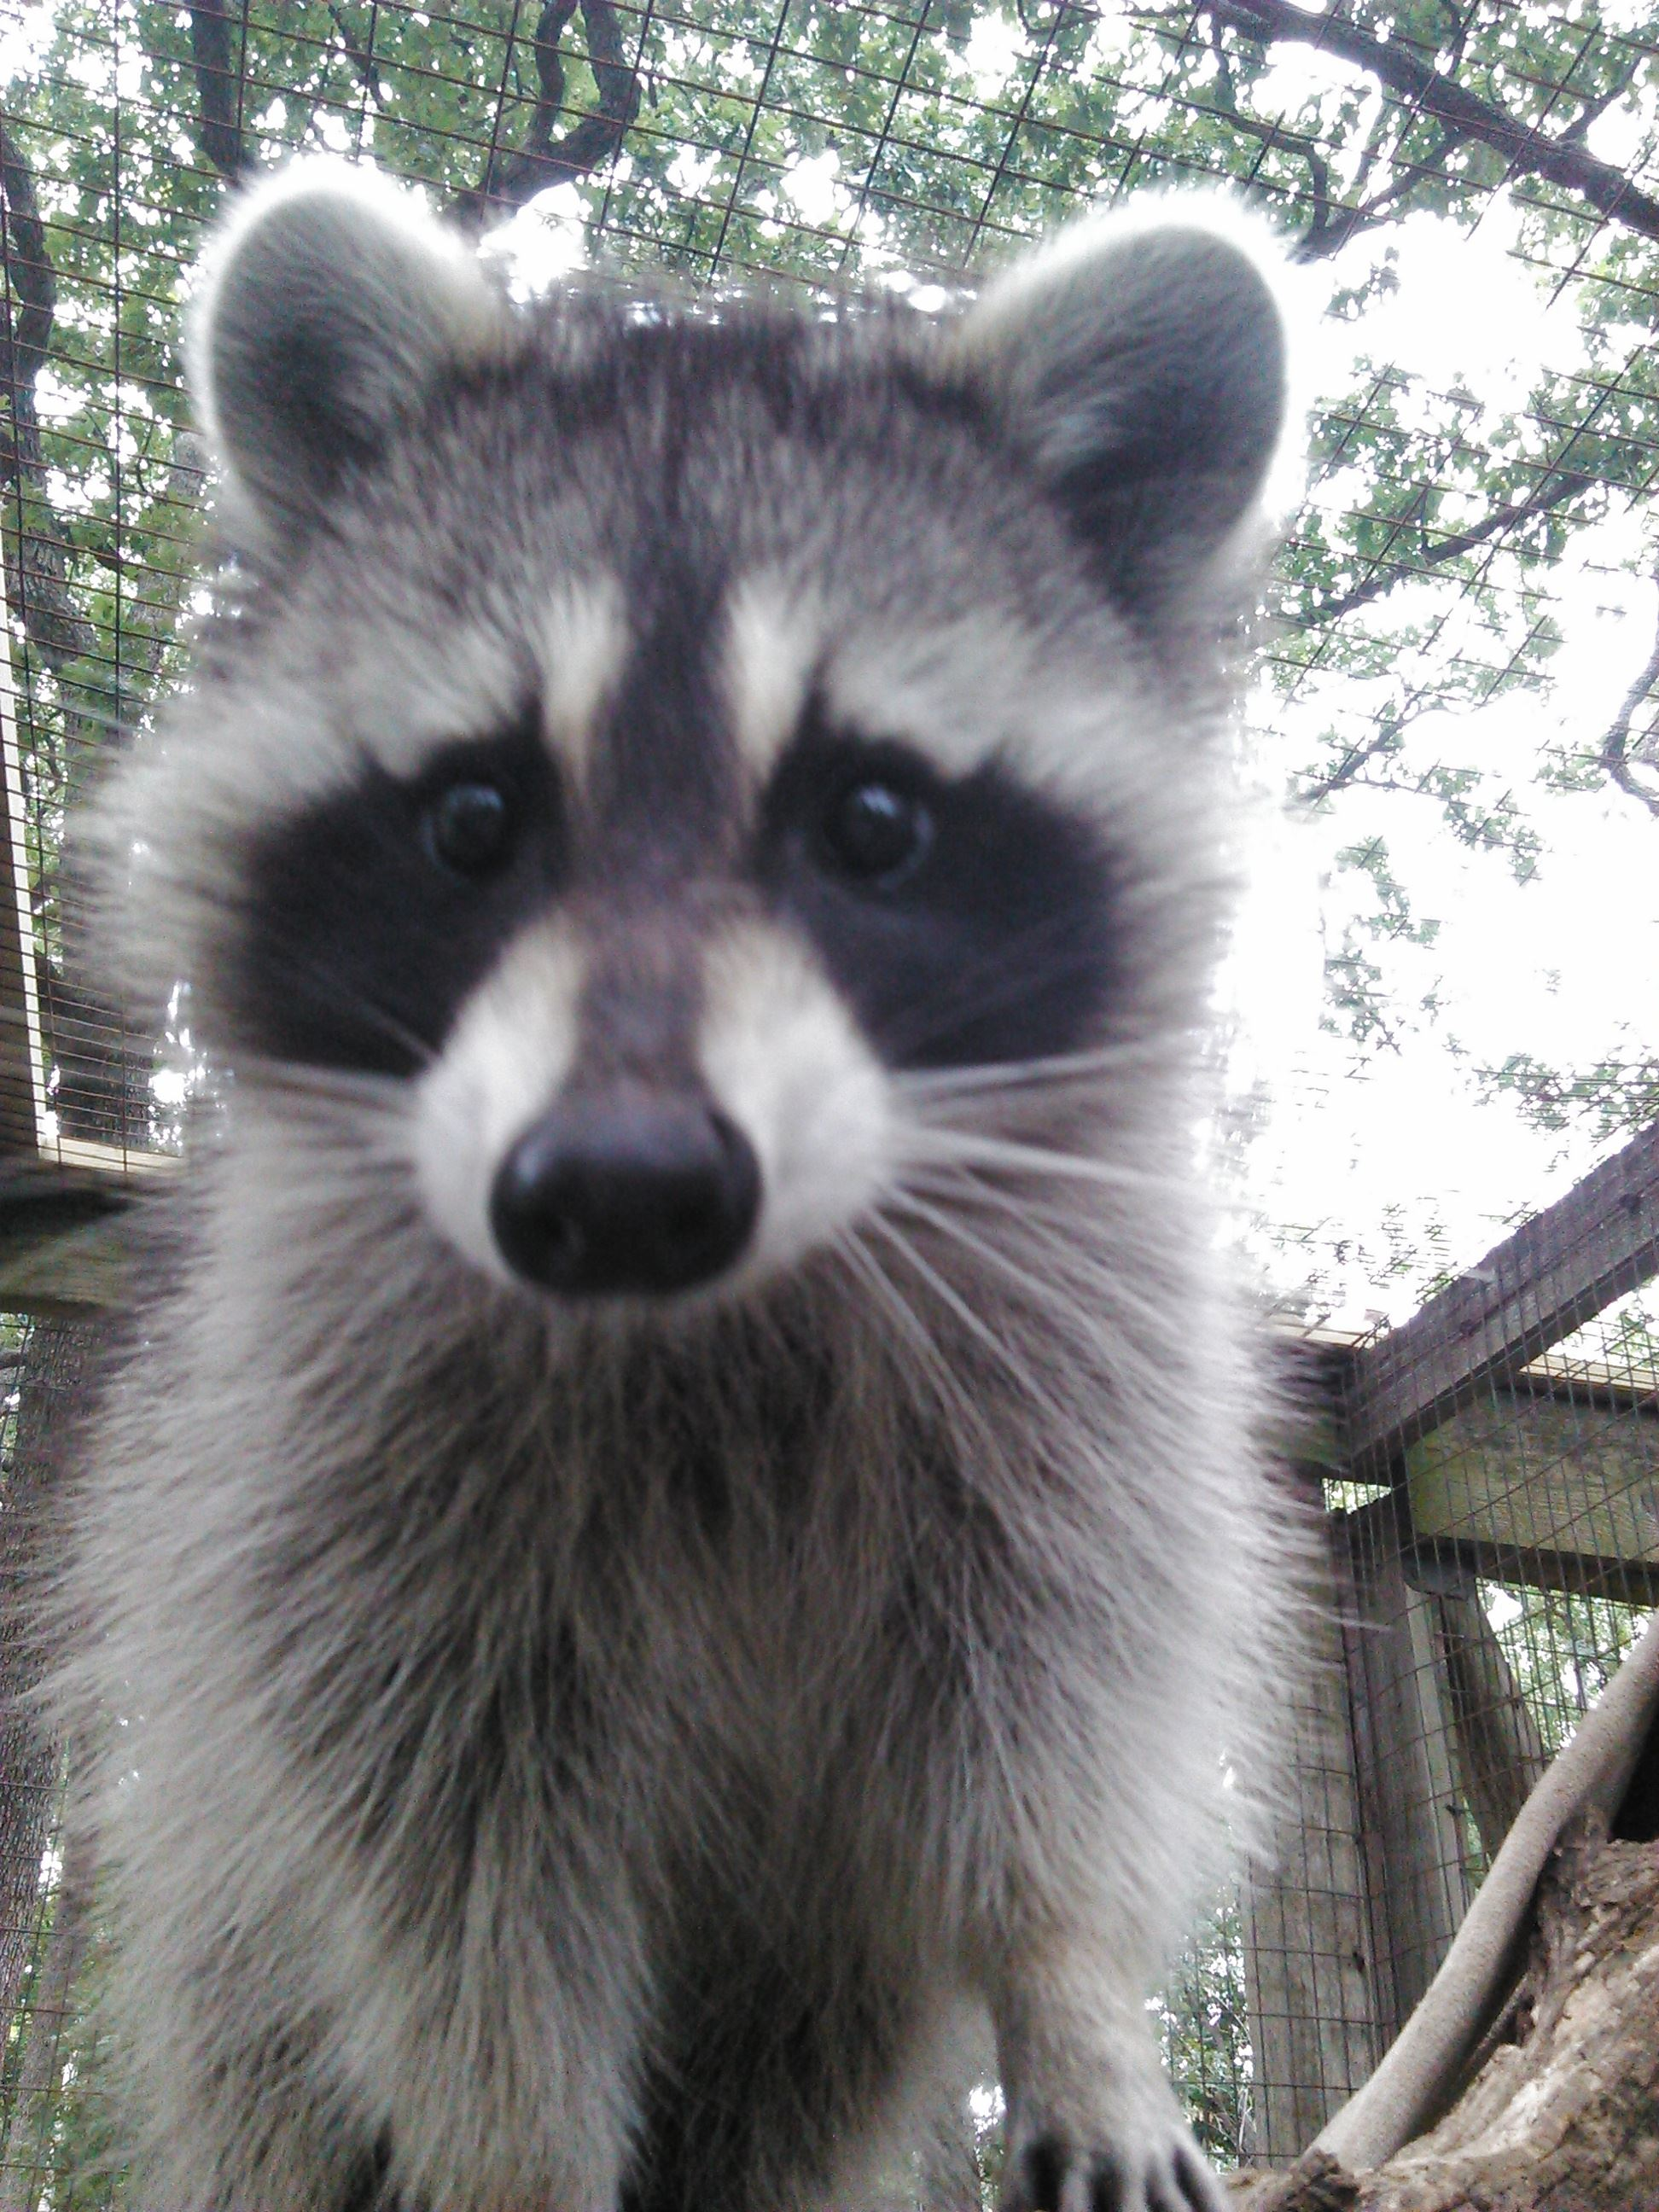 A raccoon in zoo habitat.